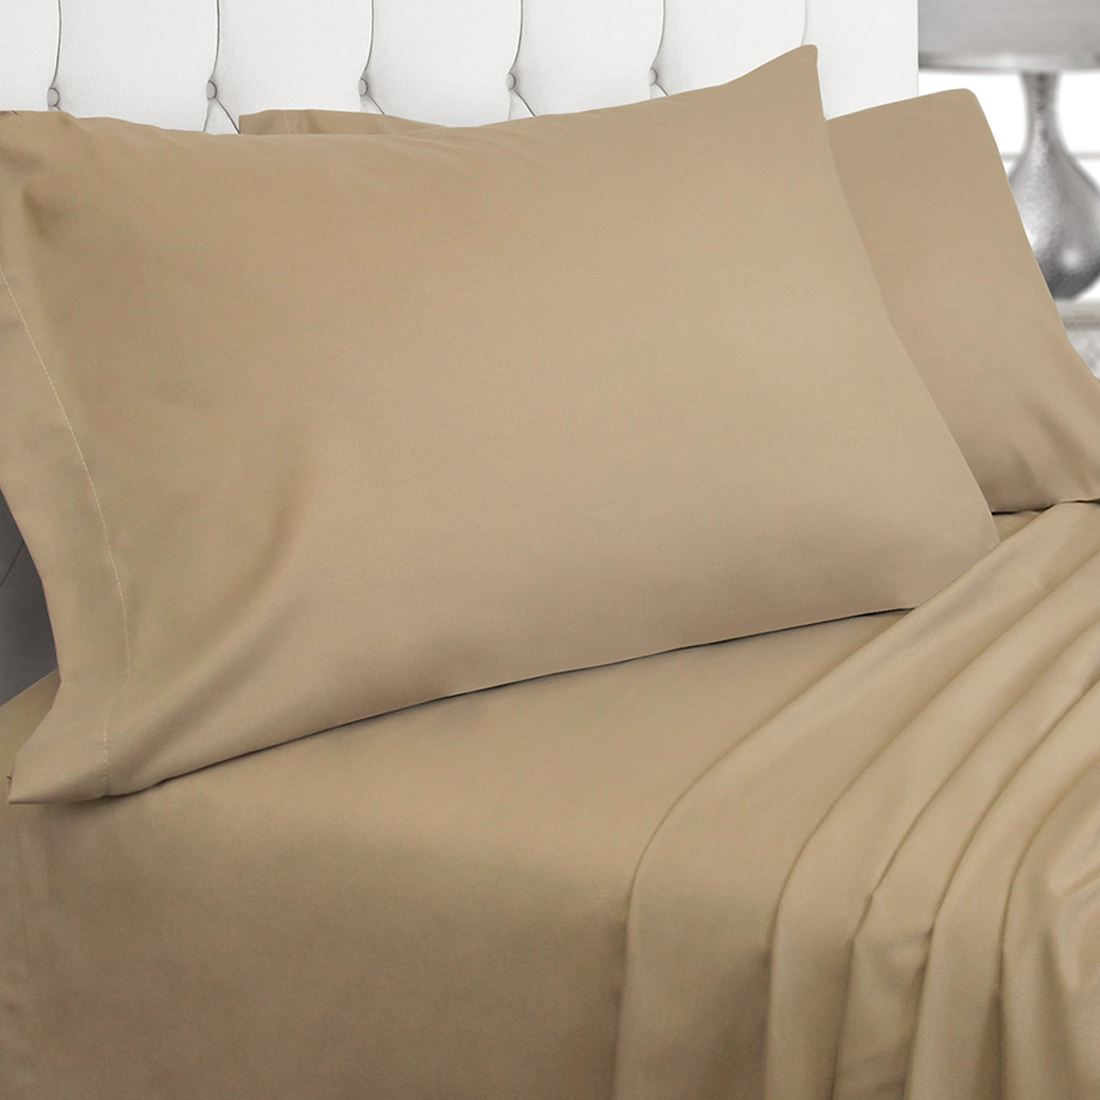 Luxury 200 thread count fitted sheet 100 egyptian cotton for Highest thread count egyptian cotton sheets